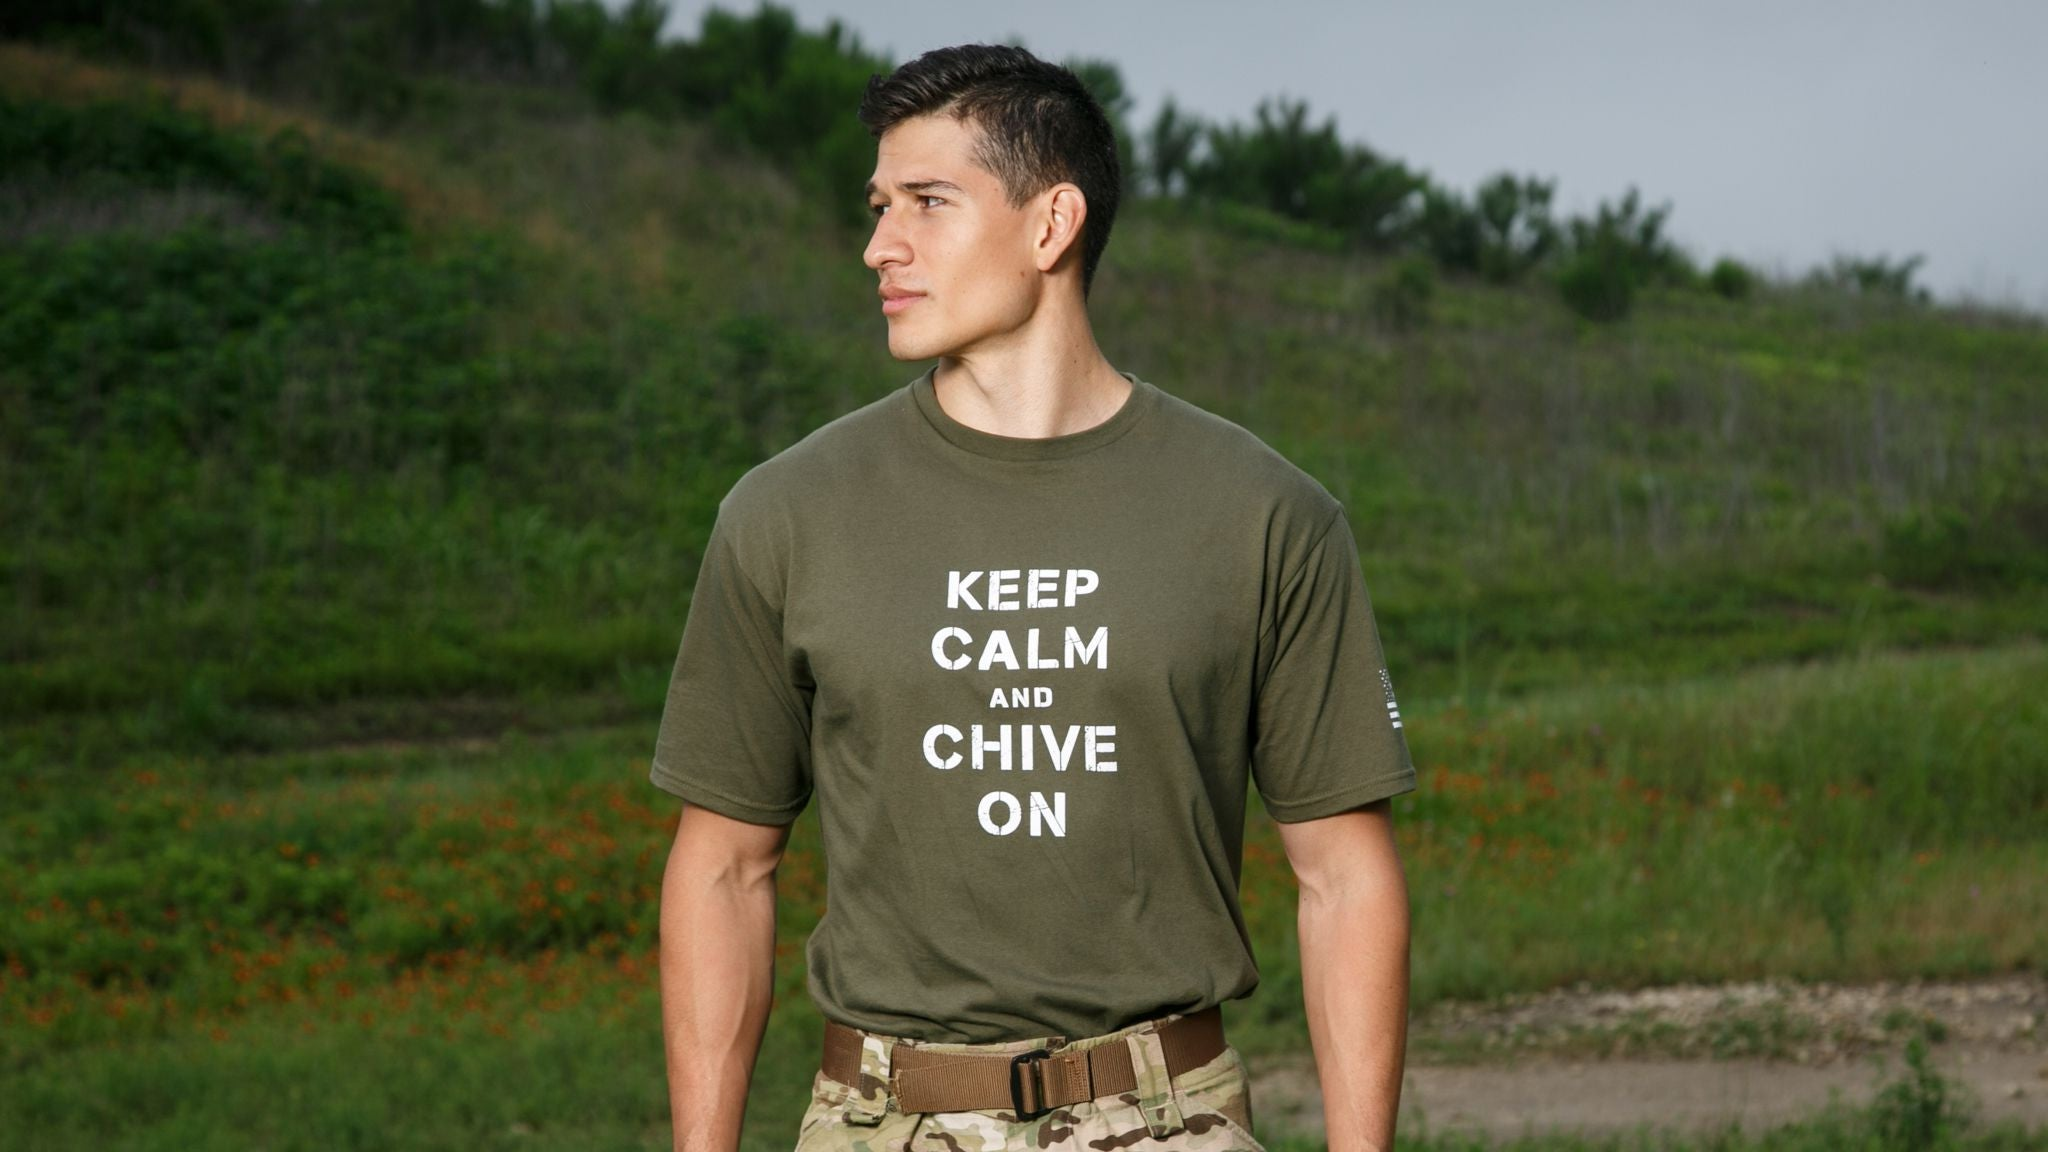 Calm and military on meaning Keep chive